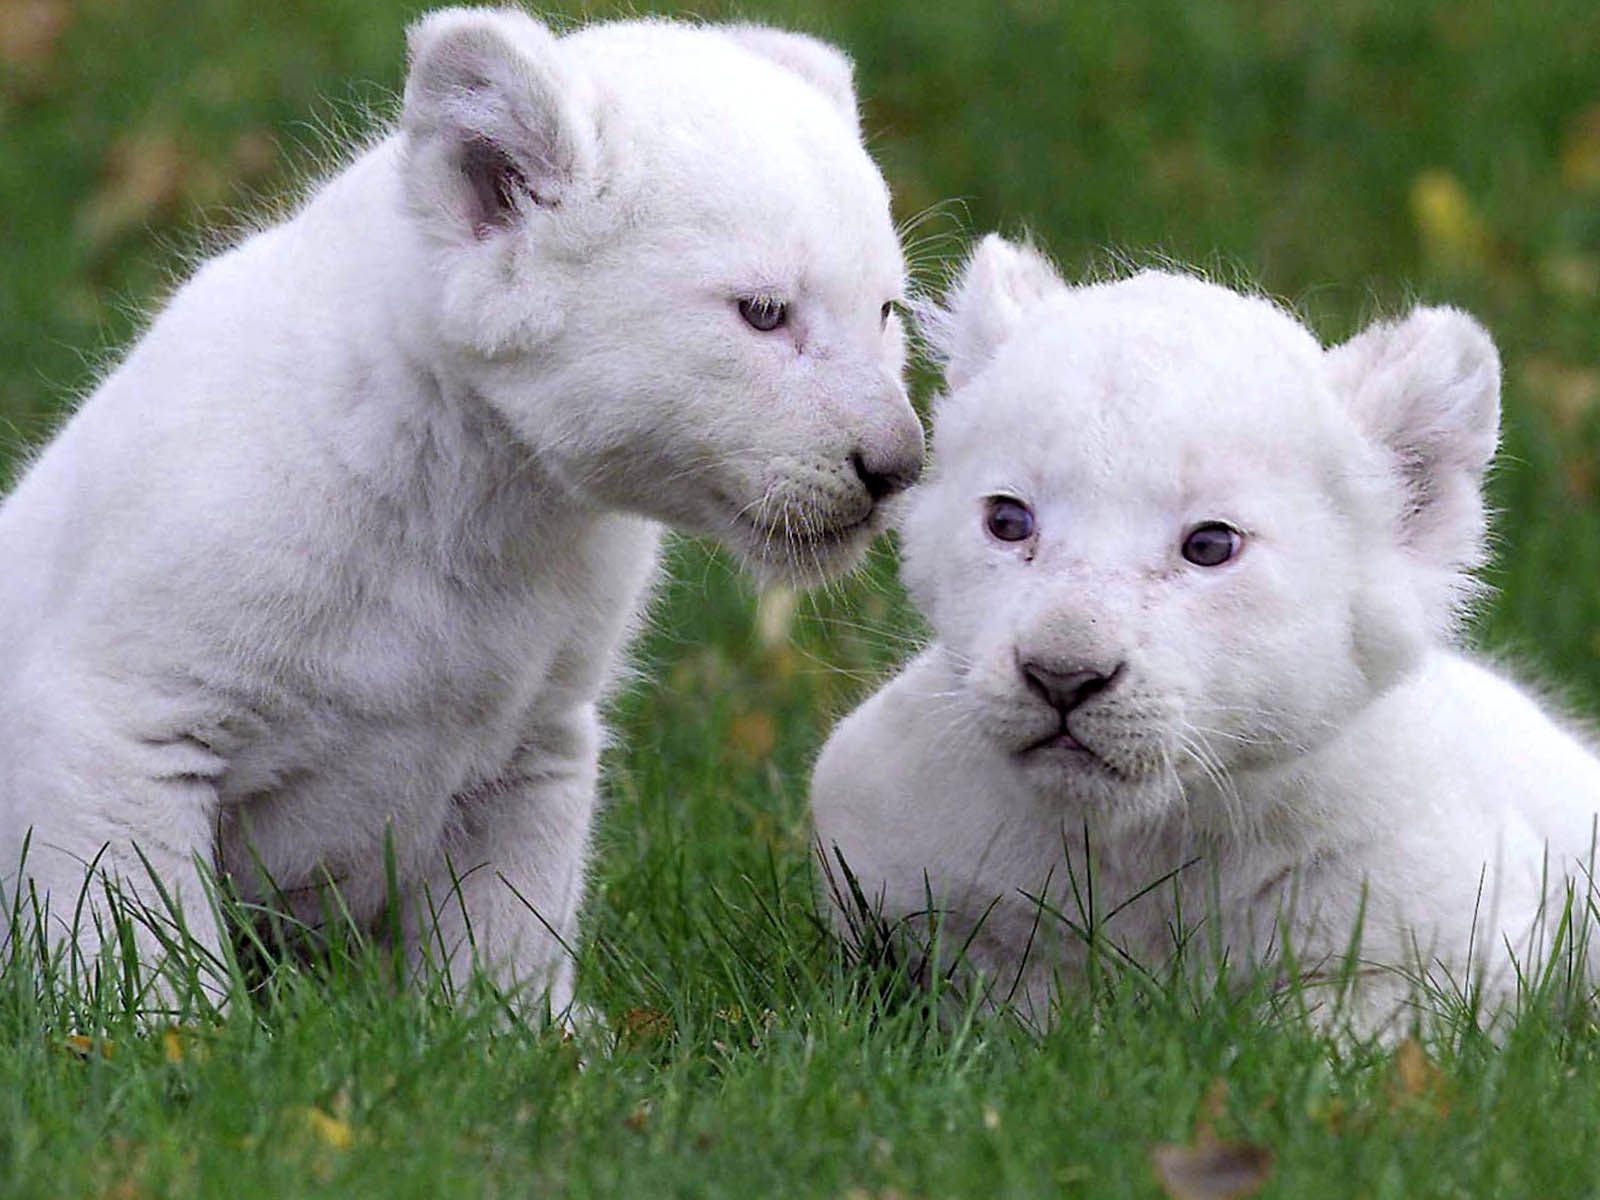 Baby White Lion Funny Wallpapers Hd Desktop And Mobile Images, Photos, Reviews